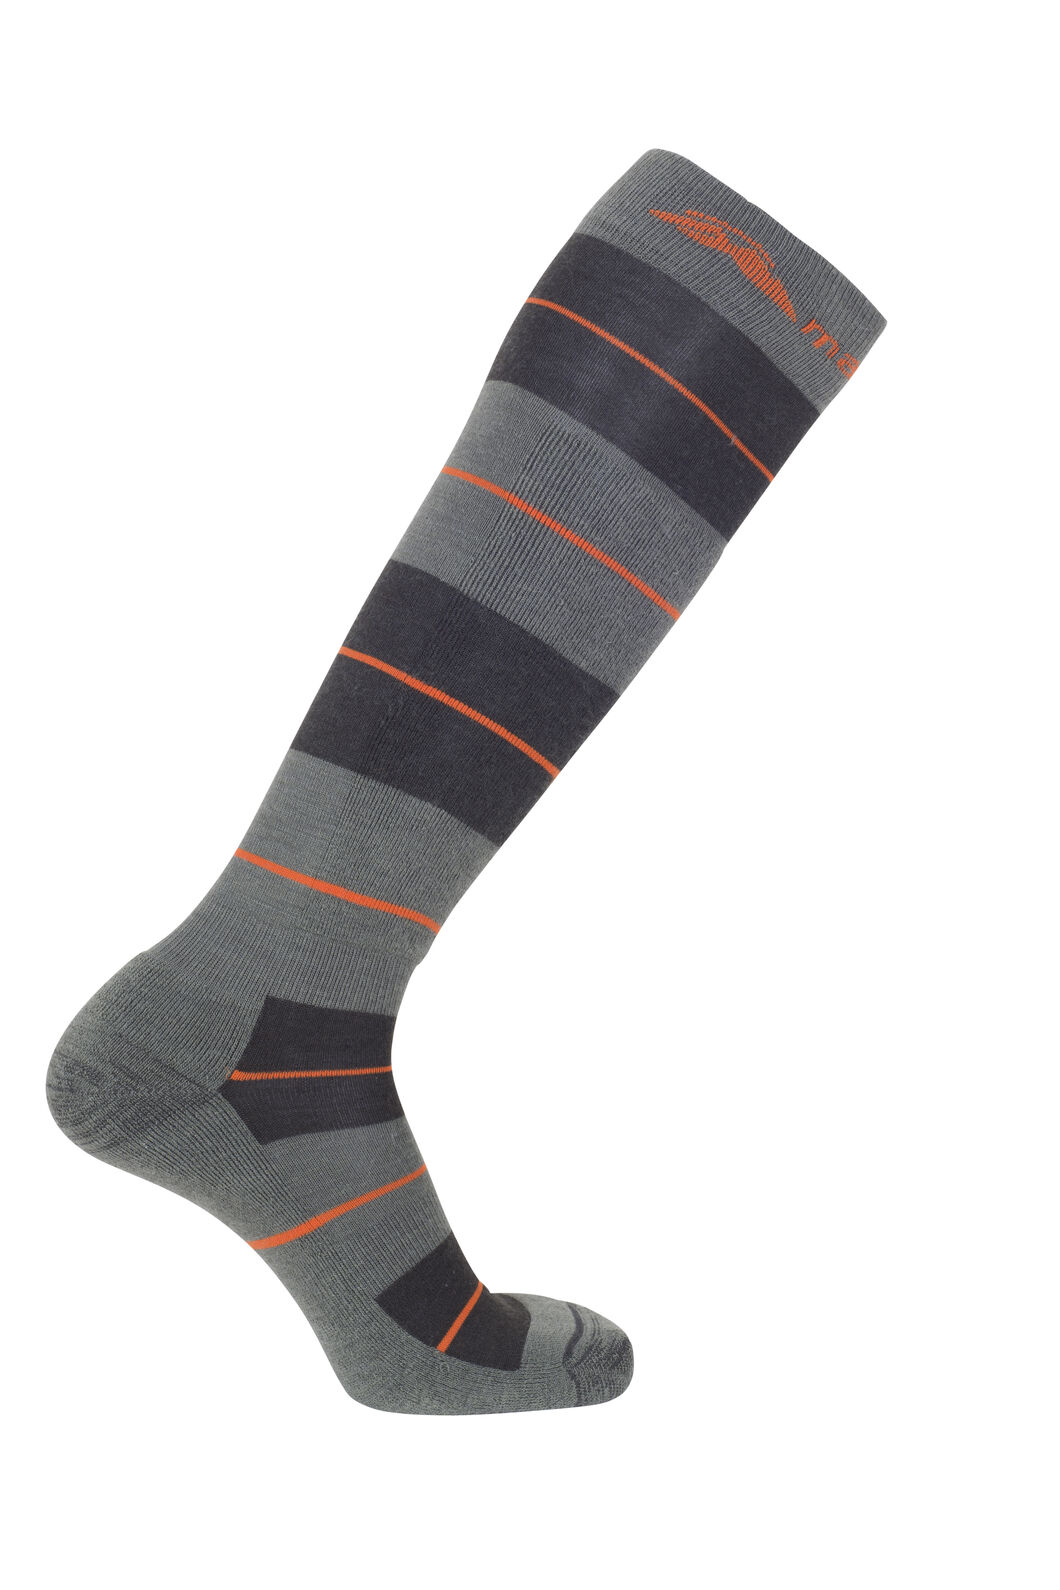 Macpac Merino Ski Socks, Grape Leaf/Puffins Bill, hi-res